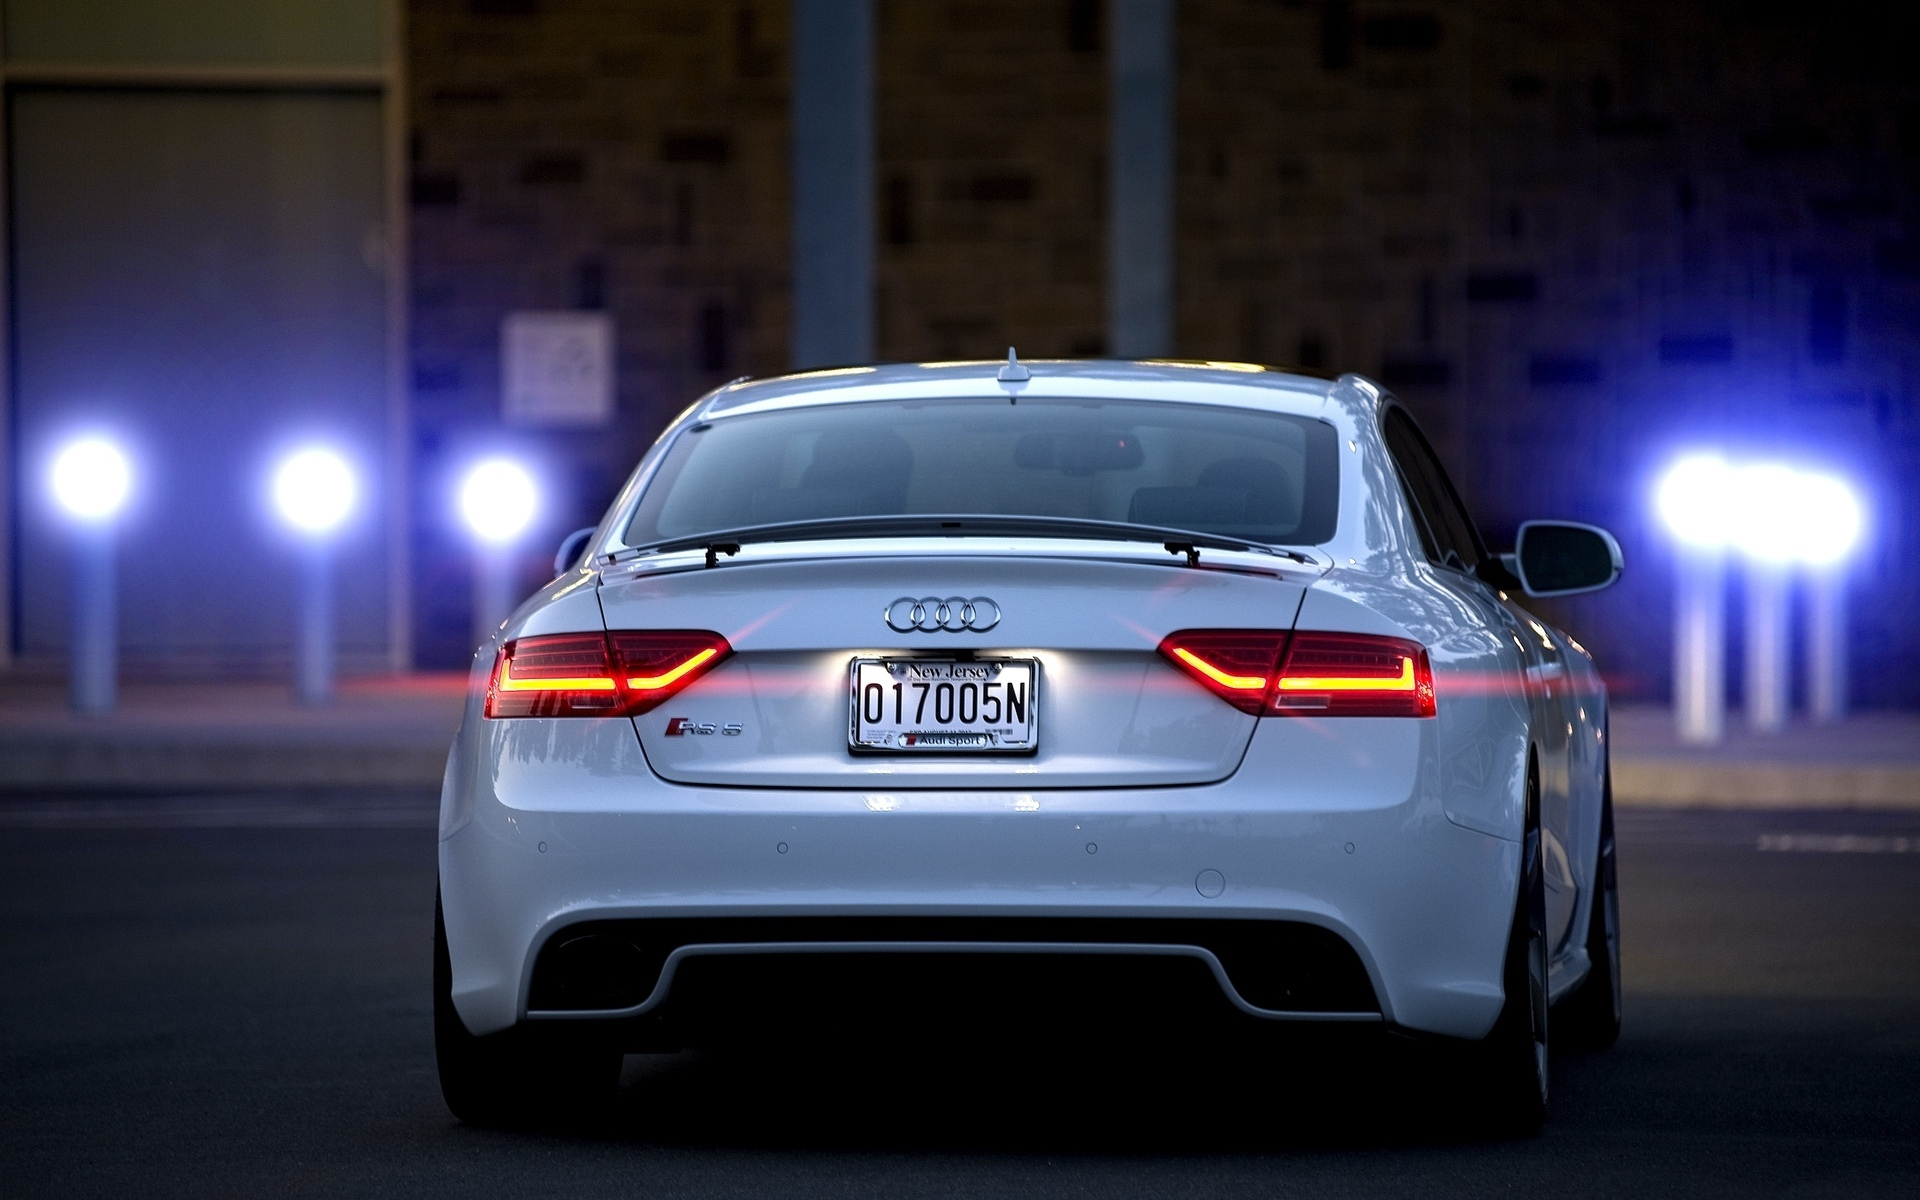 Tuner Car Wallpaper Hd Audi Rs5 2015 Review Amazing Pictures And Images Look